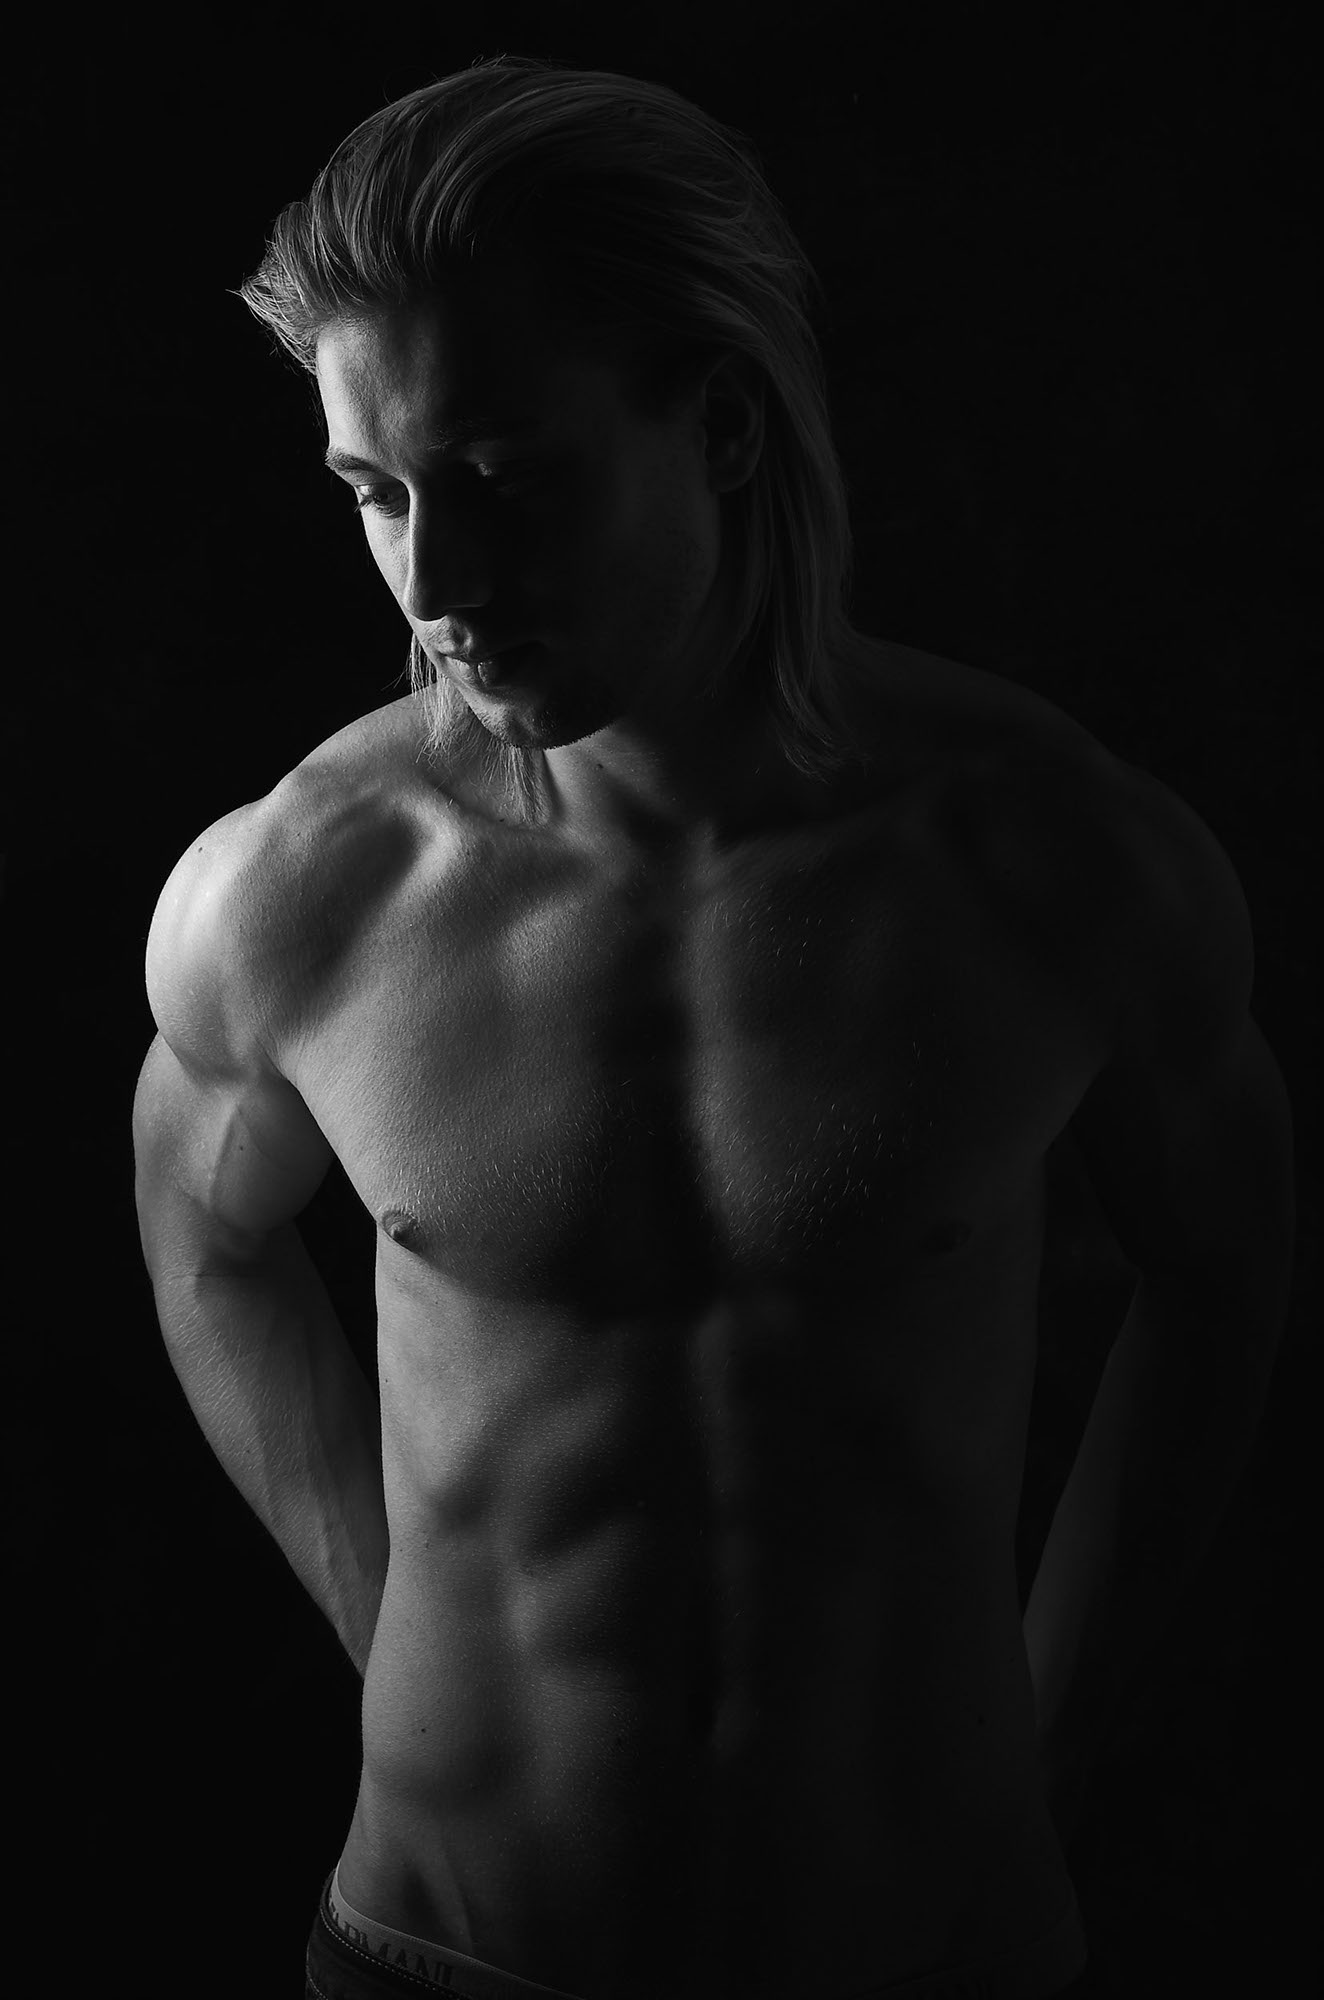 athlete-portrait-body-black-and-white